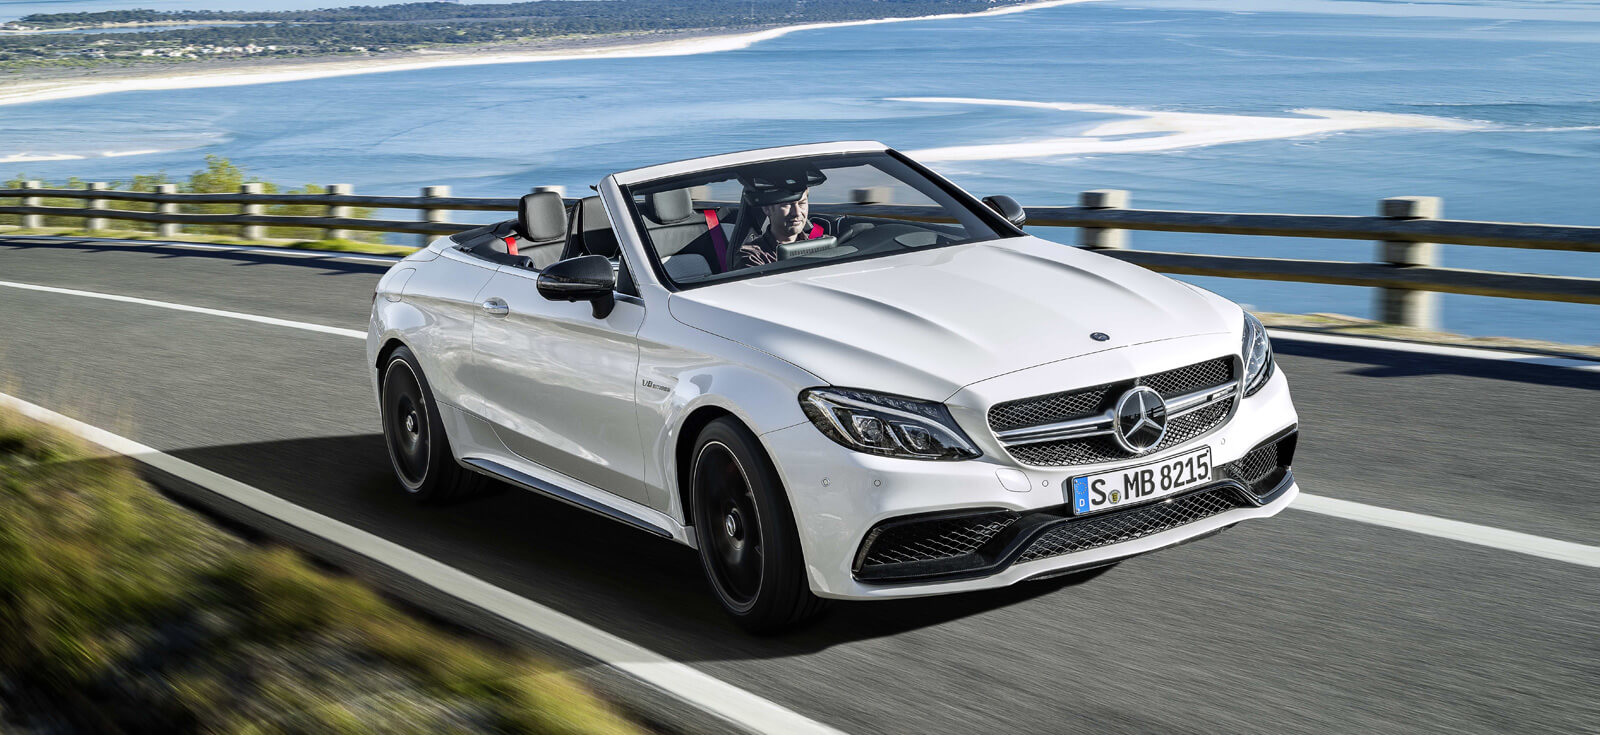 The new Mercedes-AMG C 63 Cabriolet